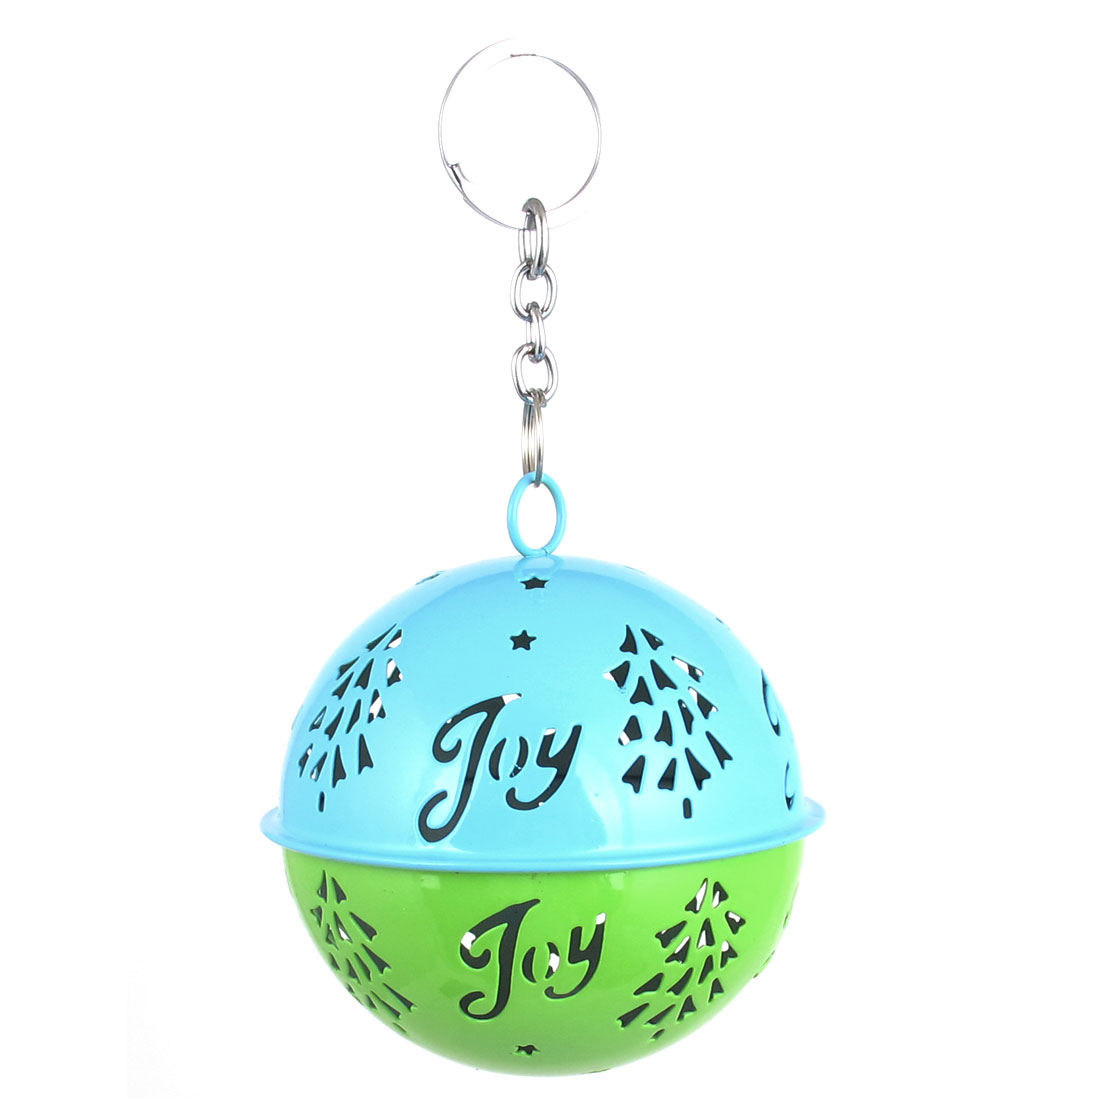 85mm Diameter Blue Green Metal Christmas Tree Detail Ball Shape Keychain Hollow Out Design Jingle Ring Bell Ornament for Celebration Party Case